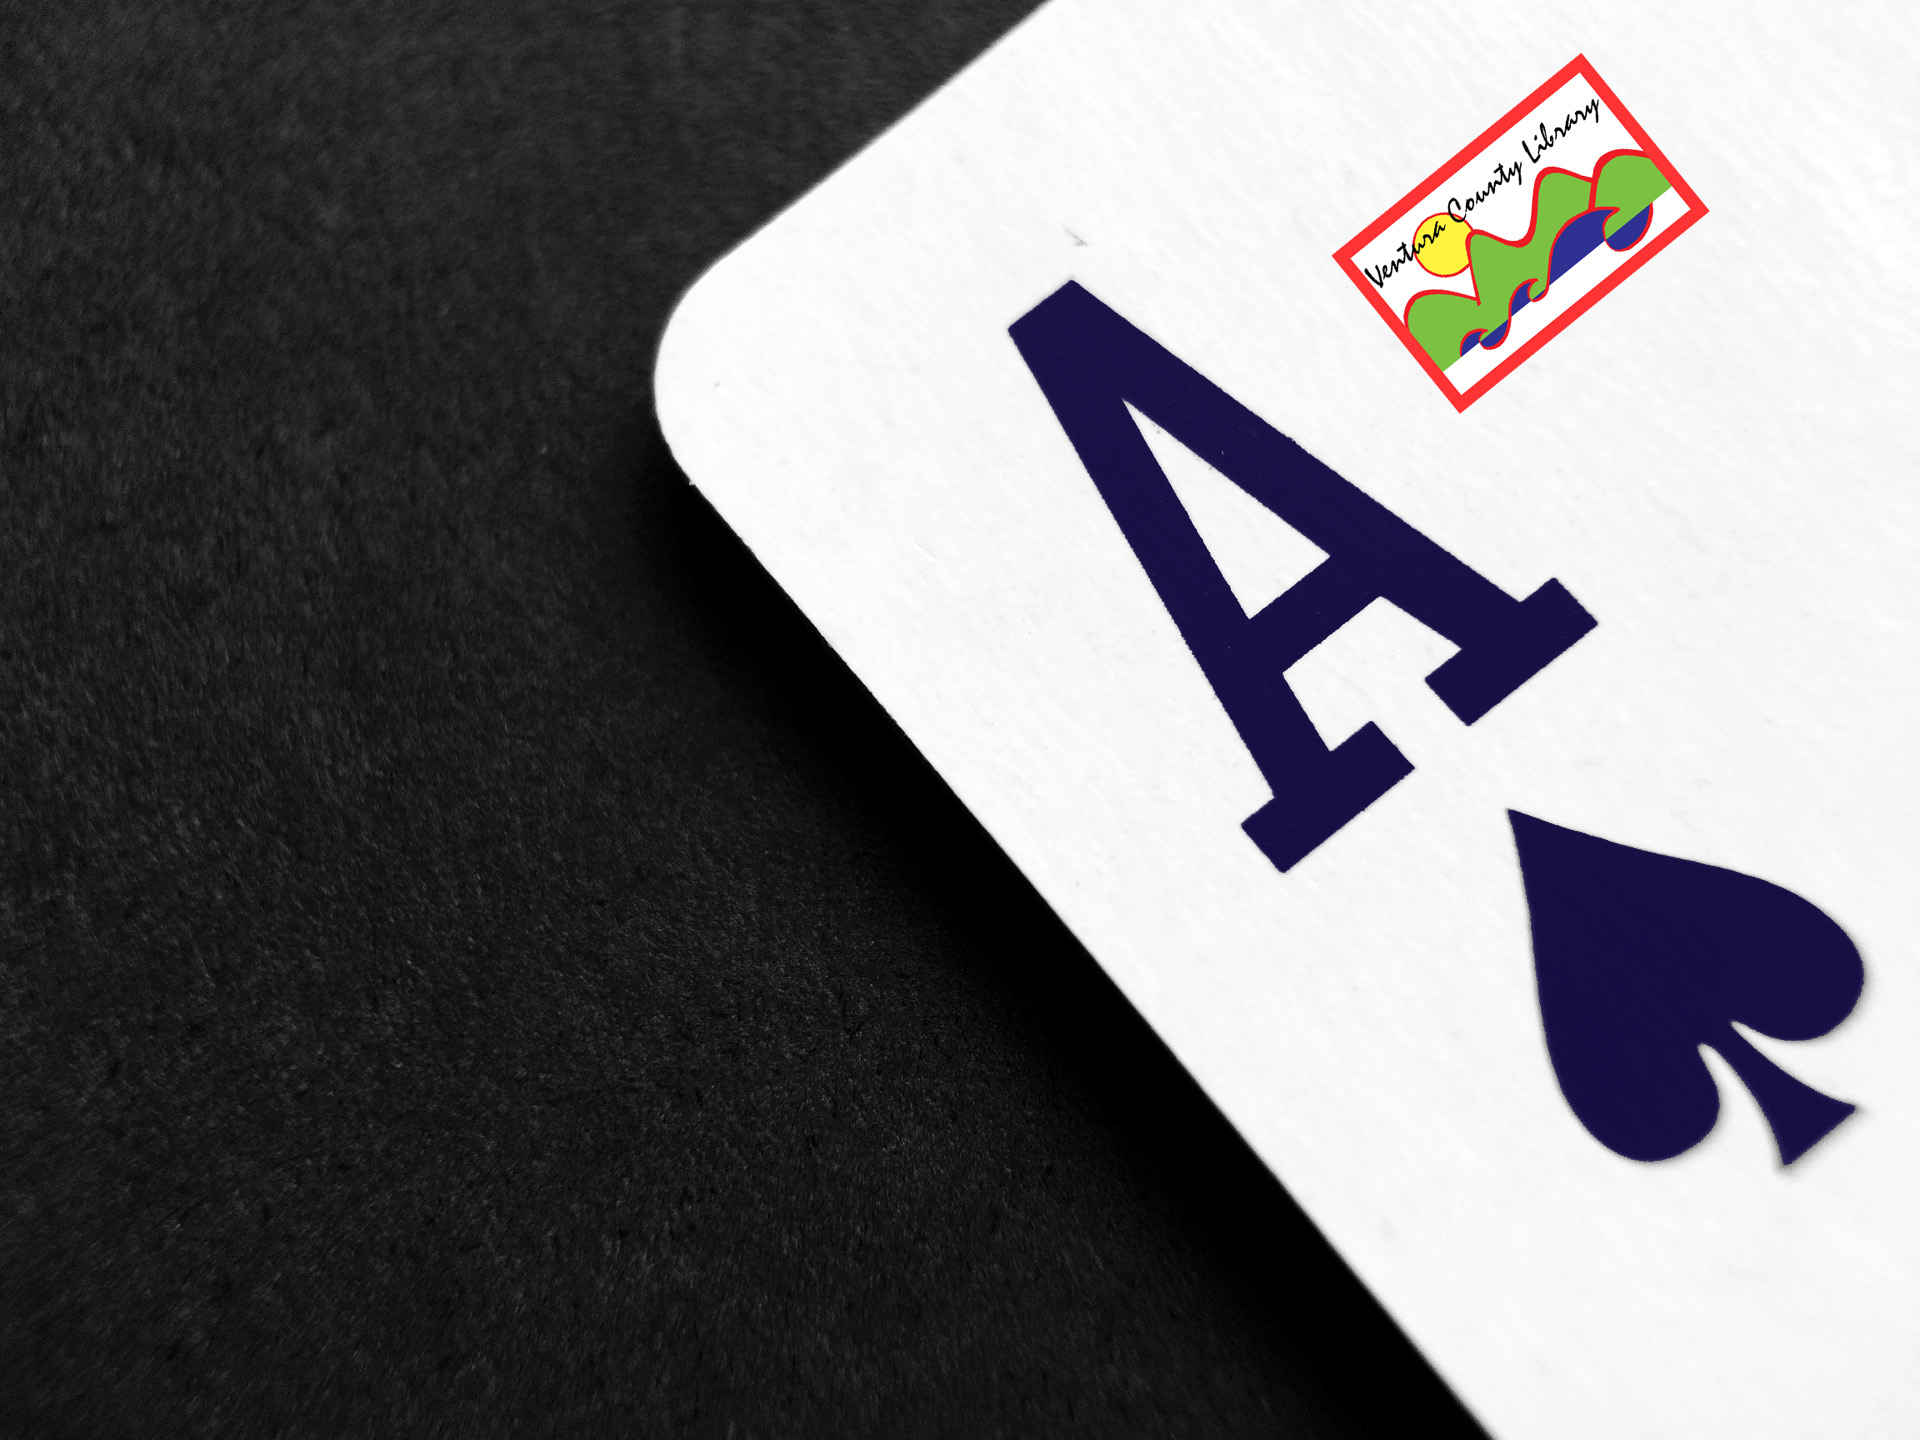 Photo of a playing card - the ace of spades